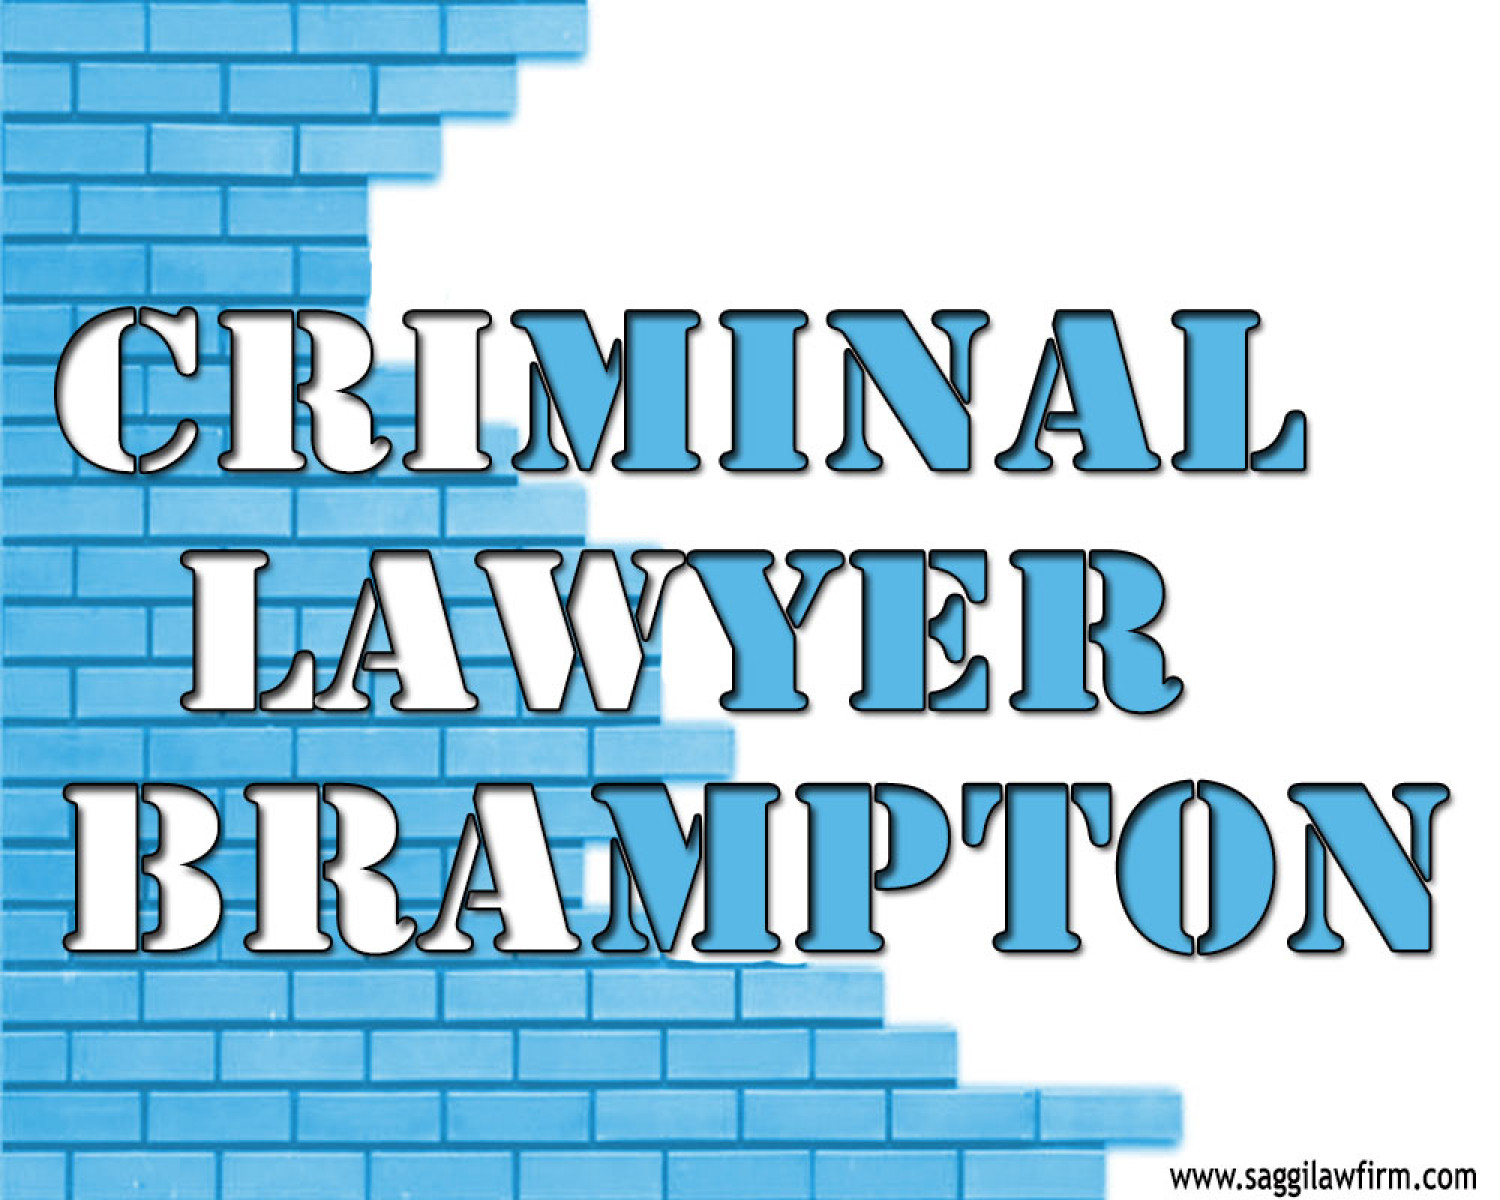 Criminal Lawyer In Brampton Infographic